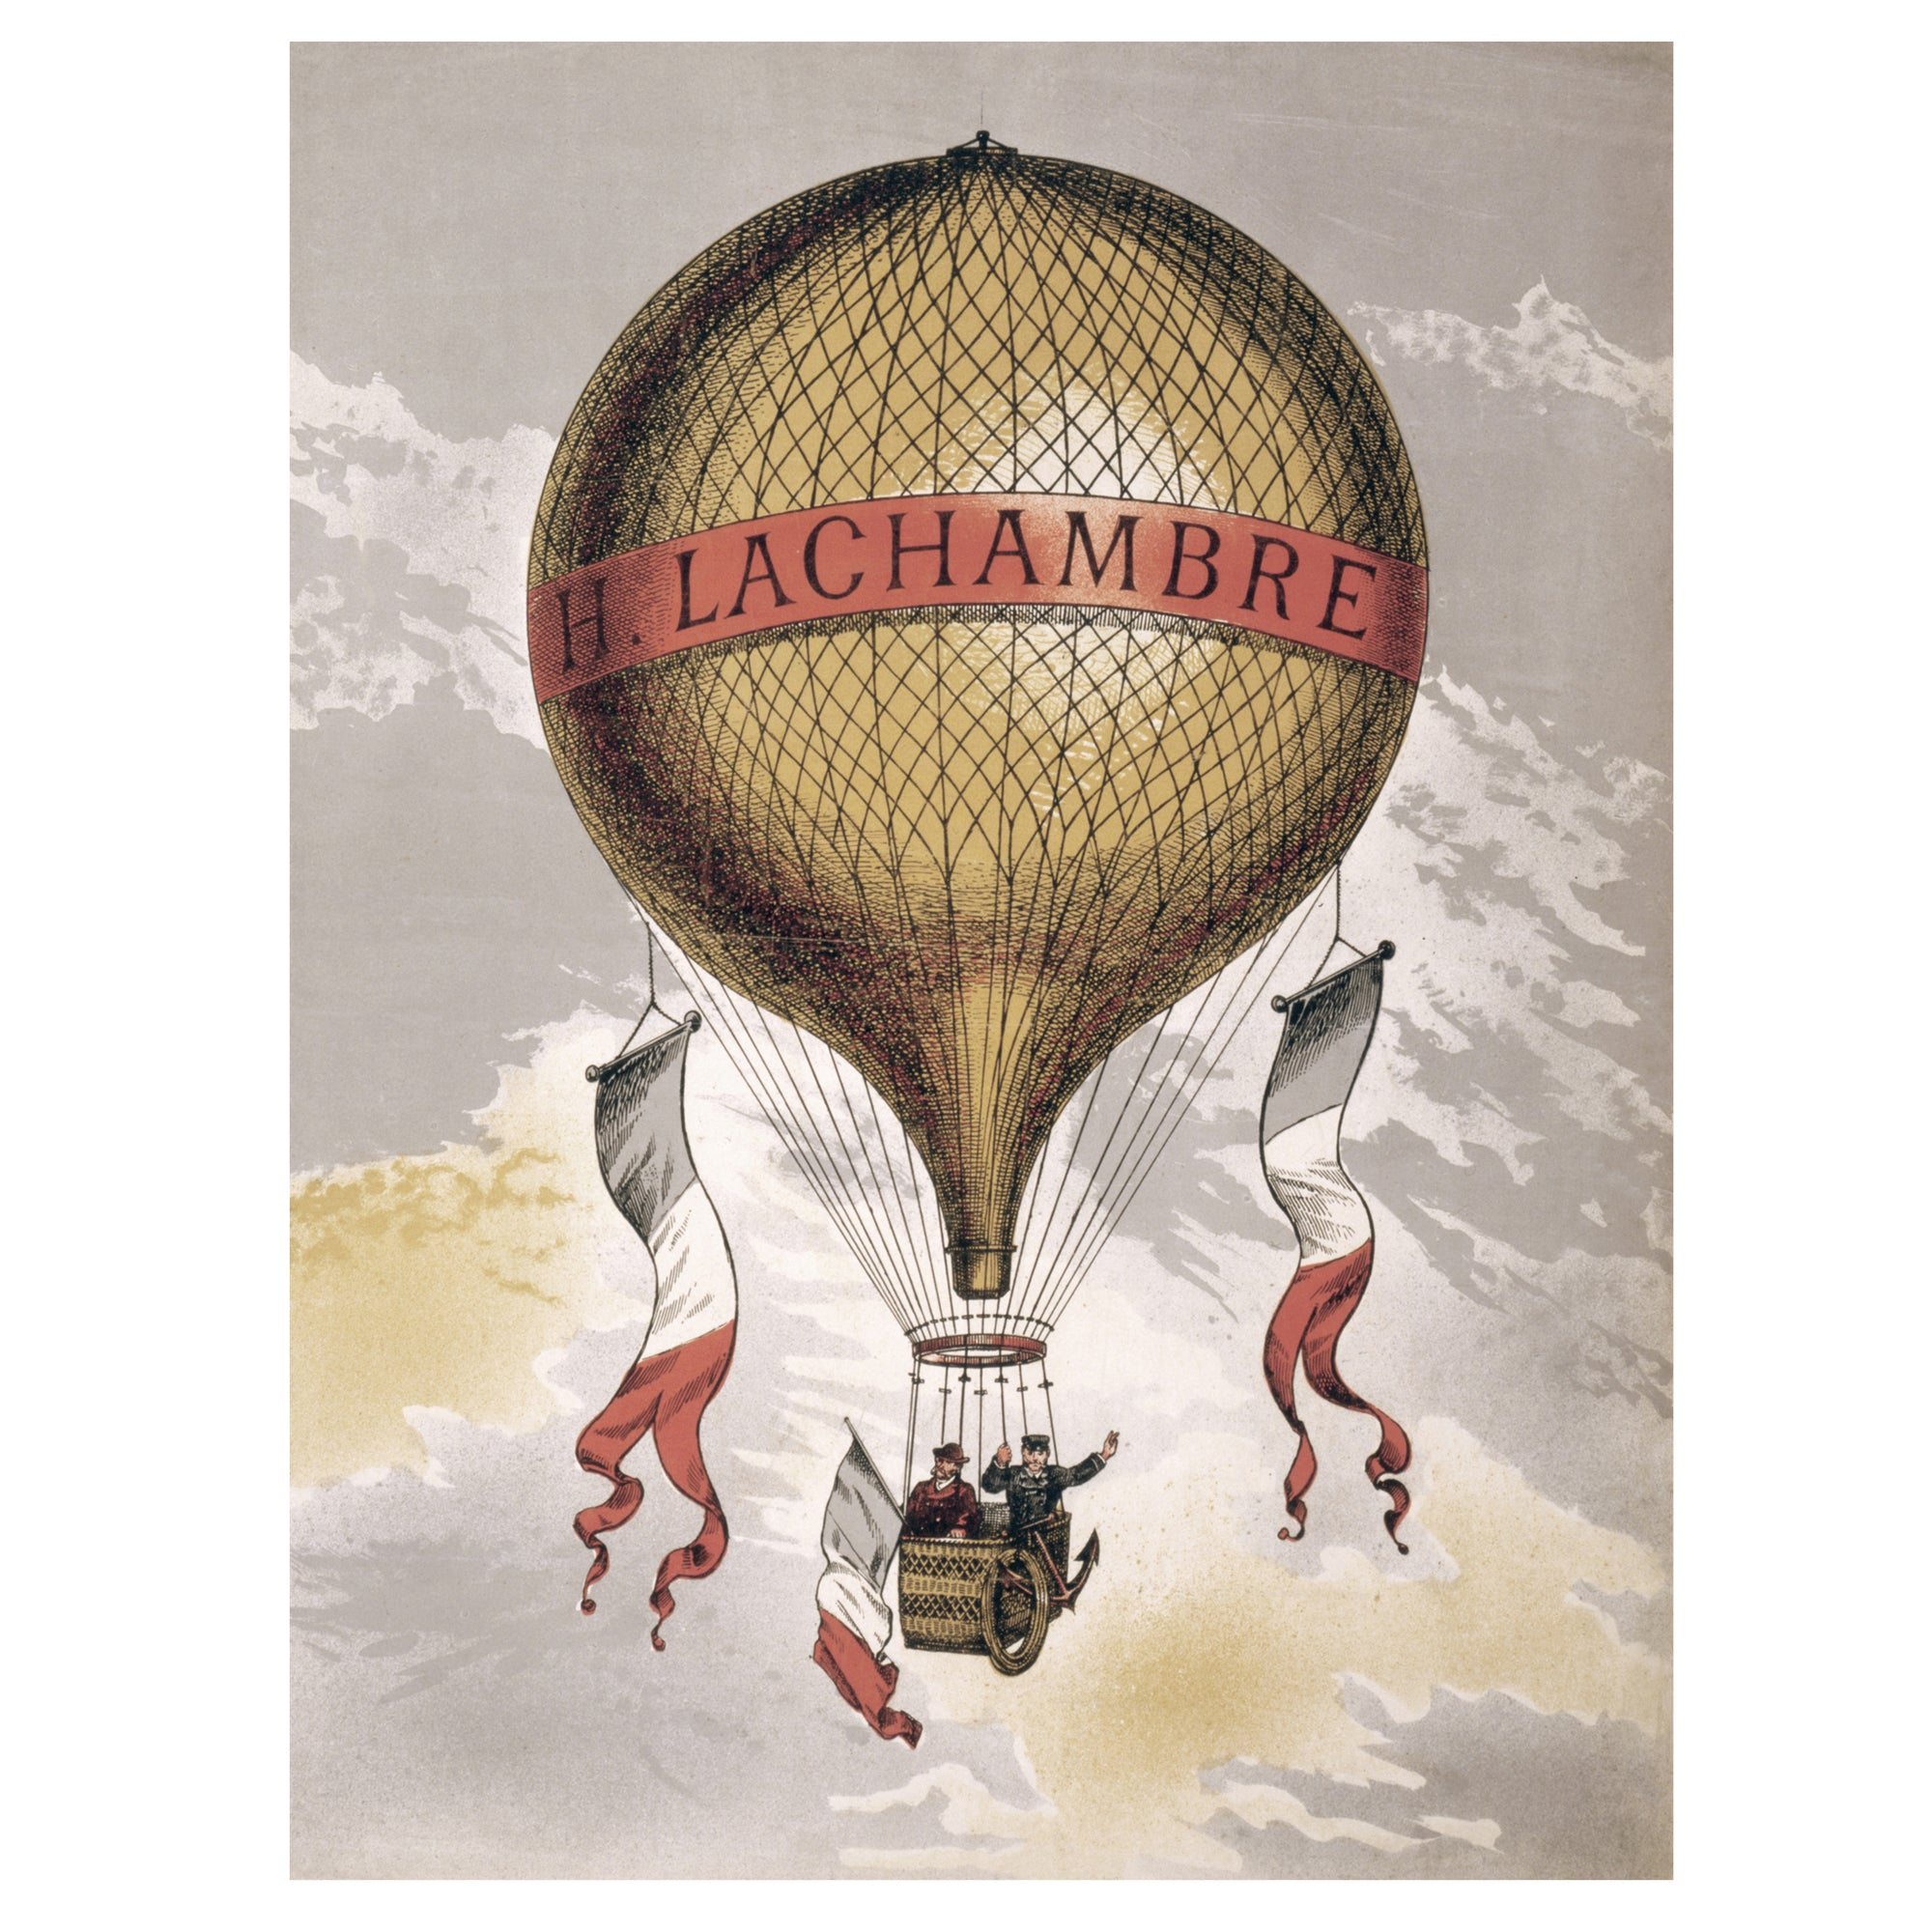 Vintage hot air balloon poster print